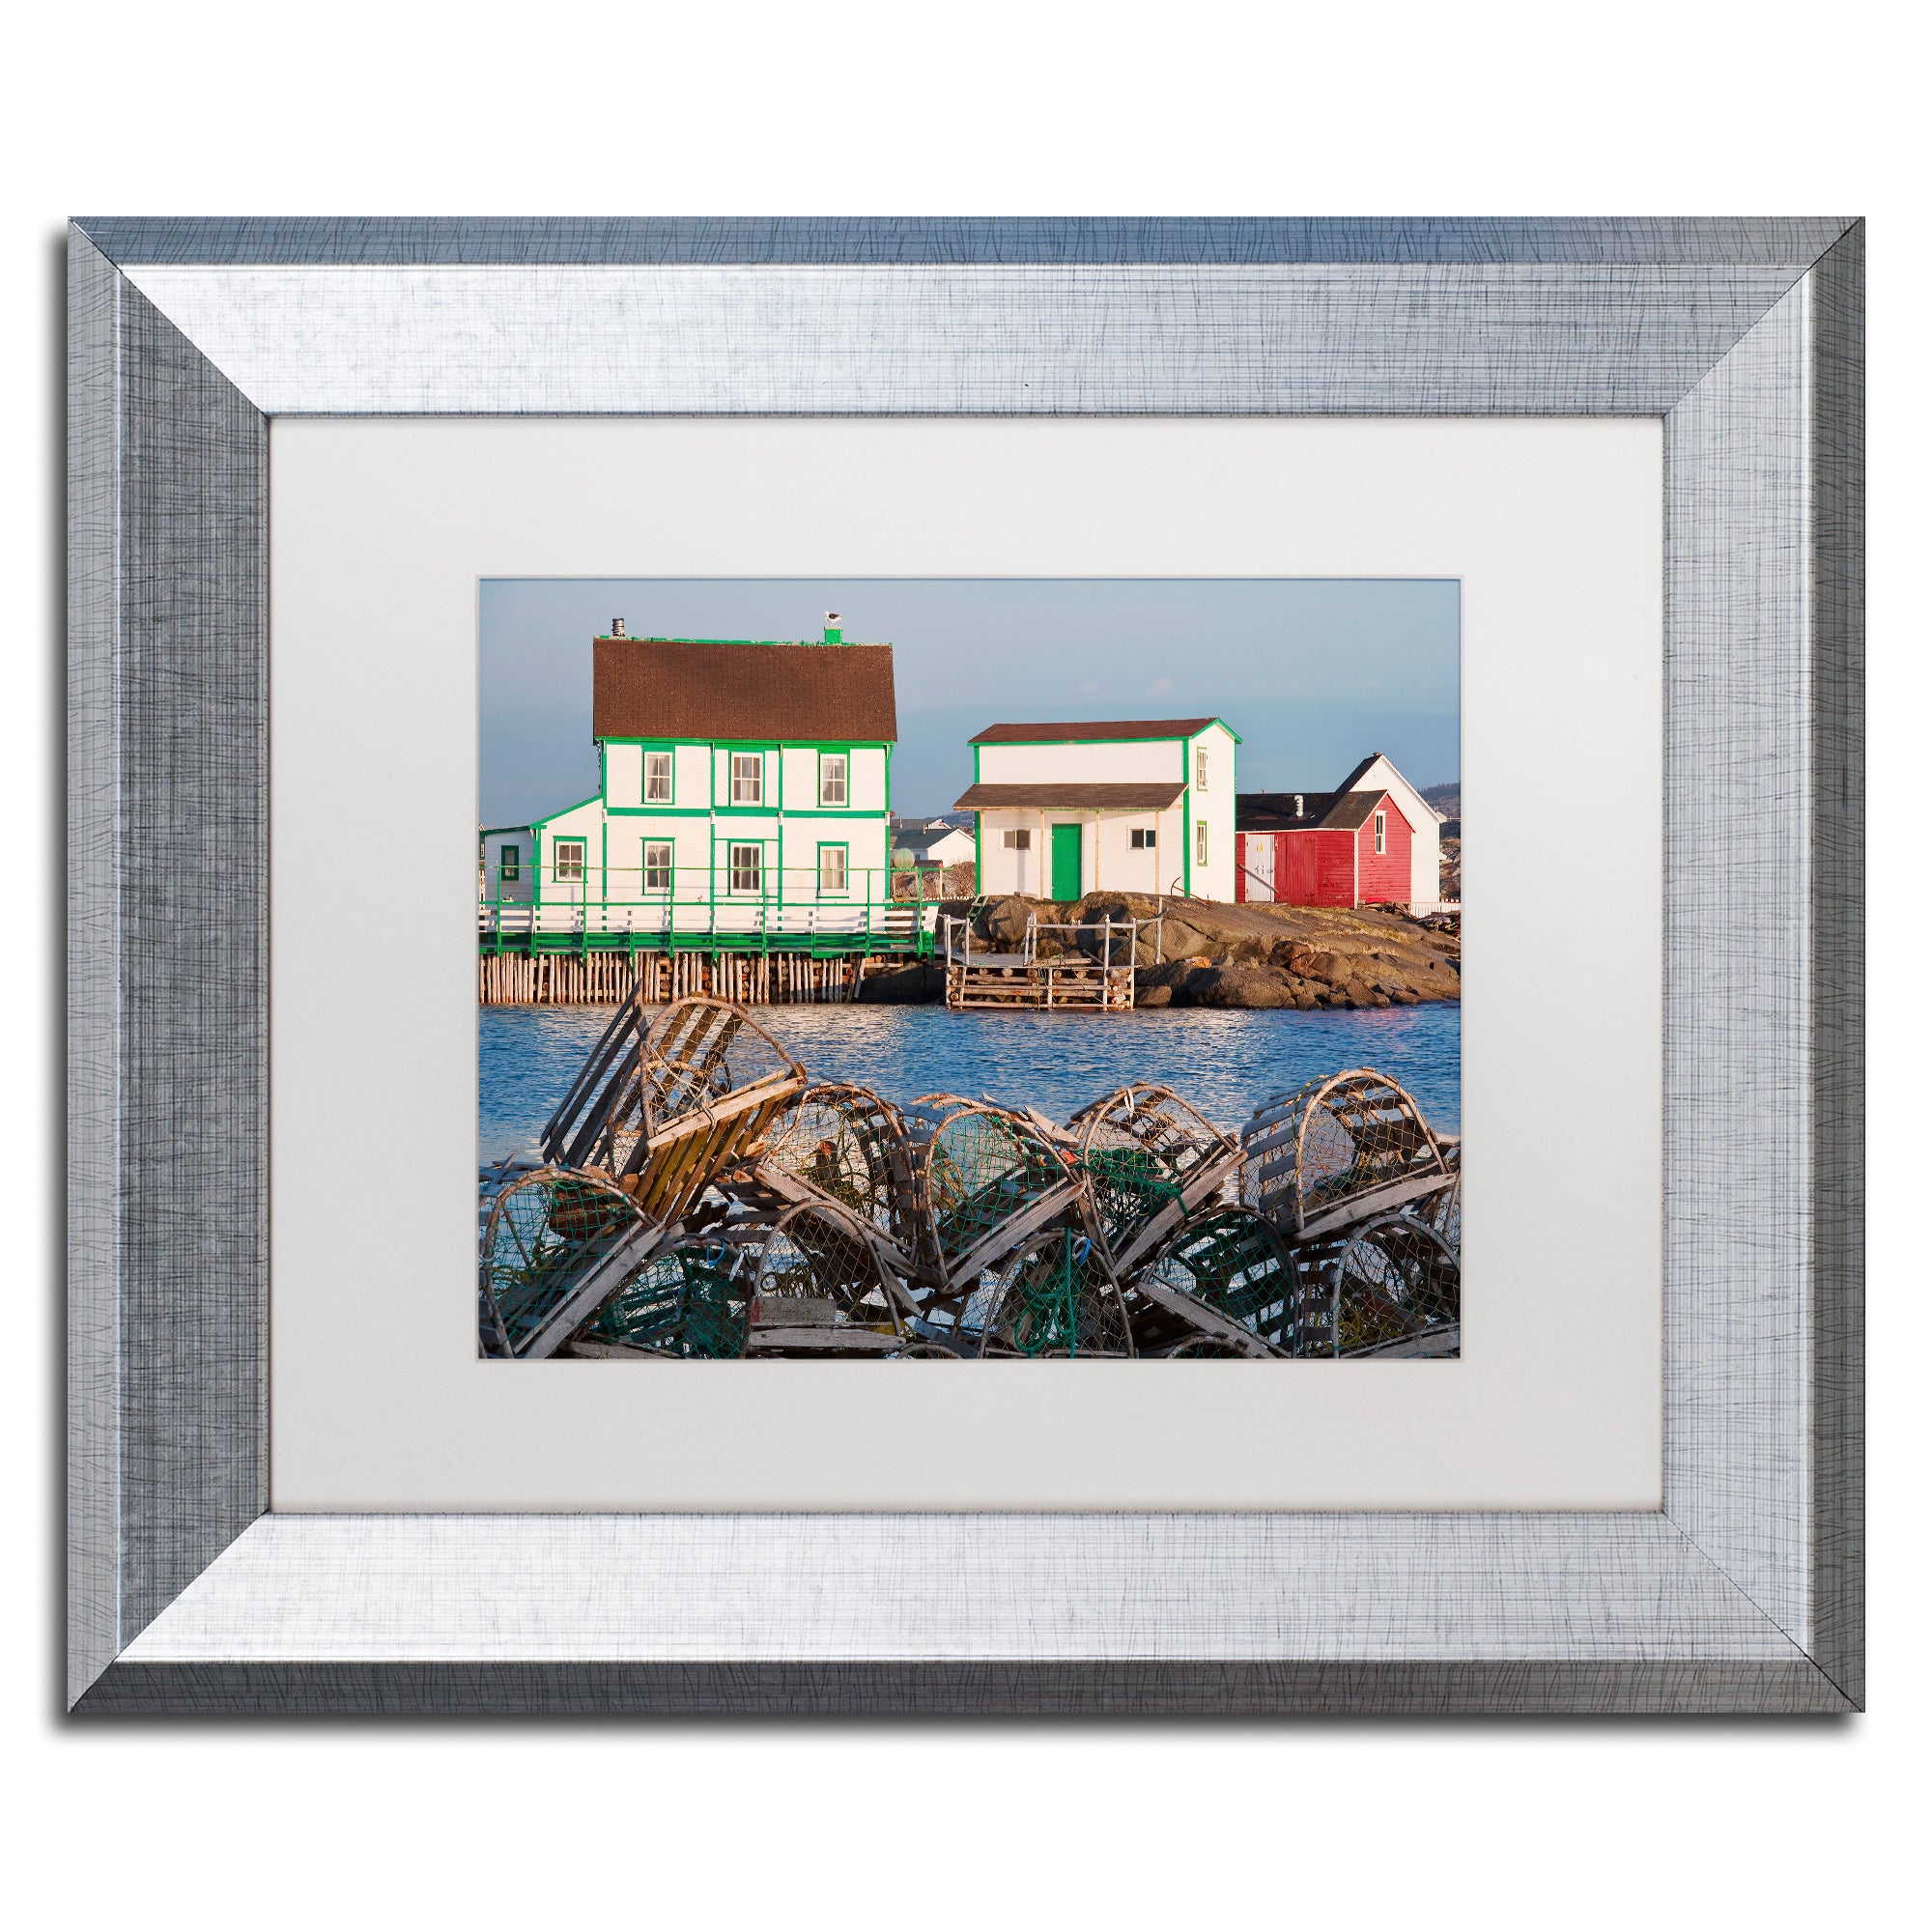 Trademark Michael Blanchette Photography 'Lobster Traps' ...